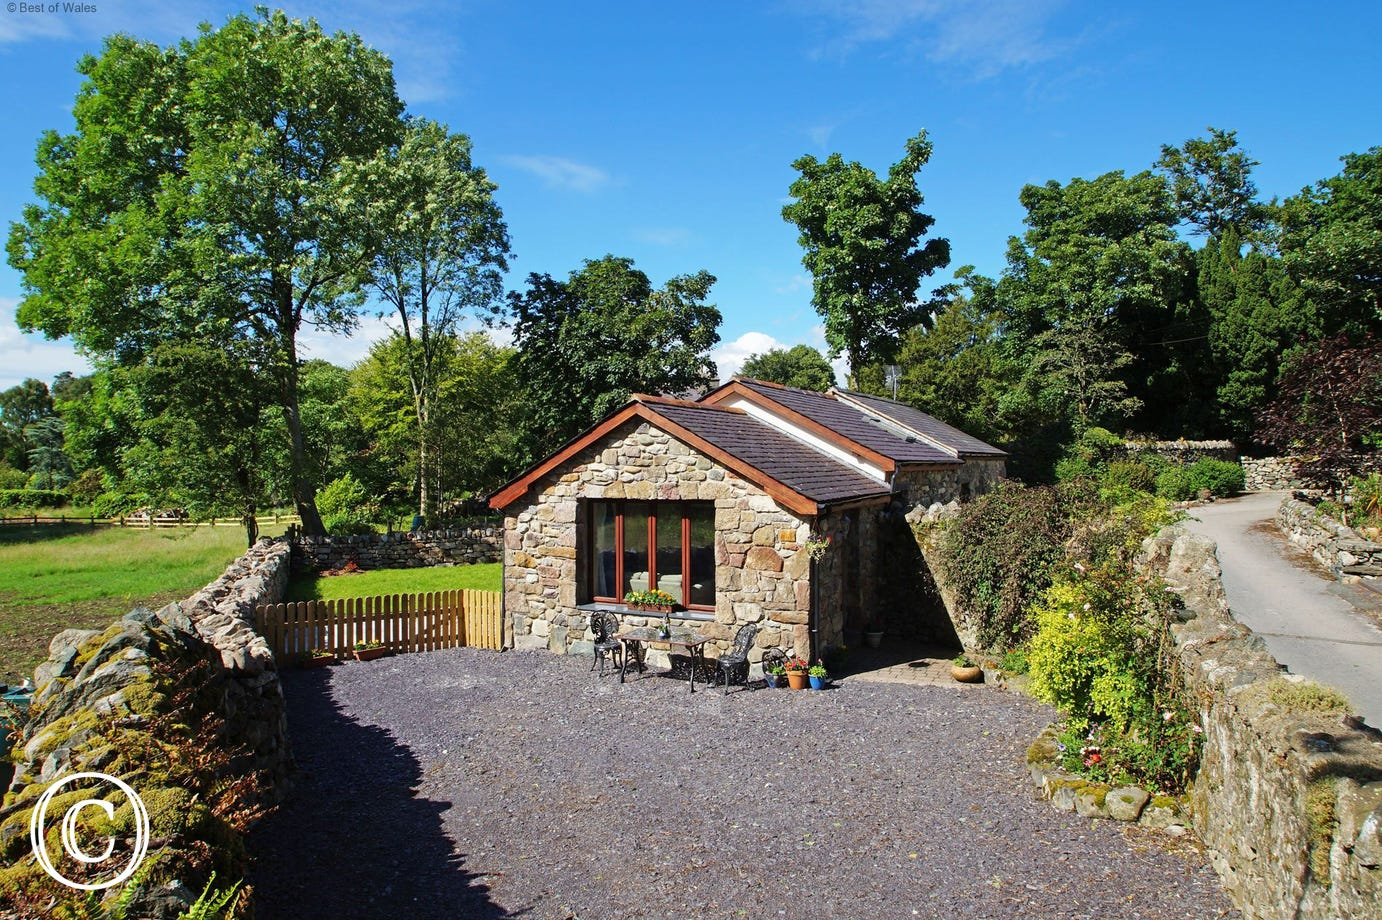 Self catering Llanberis holiday cottage - Snowdon nearby